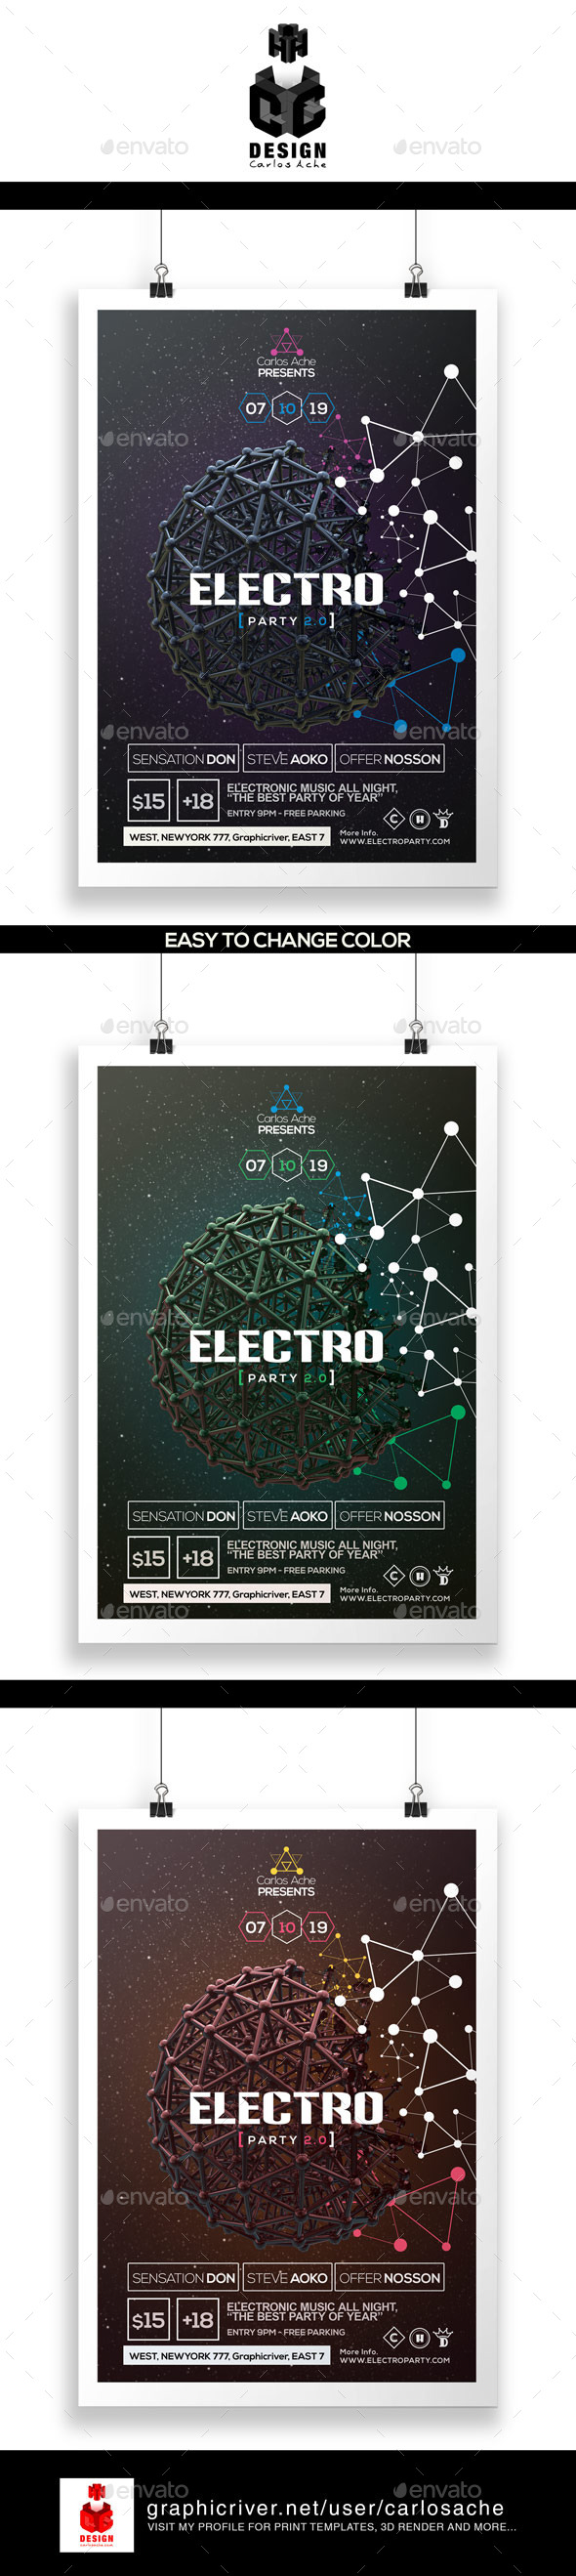 Electro Party Flyer & Poster Template